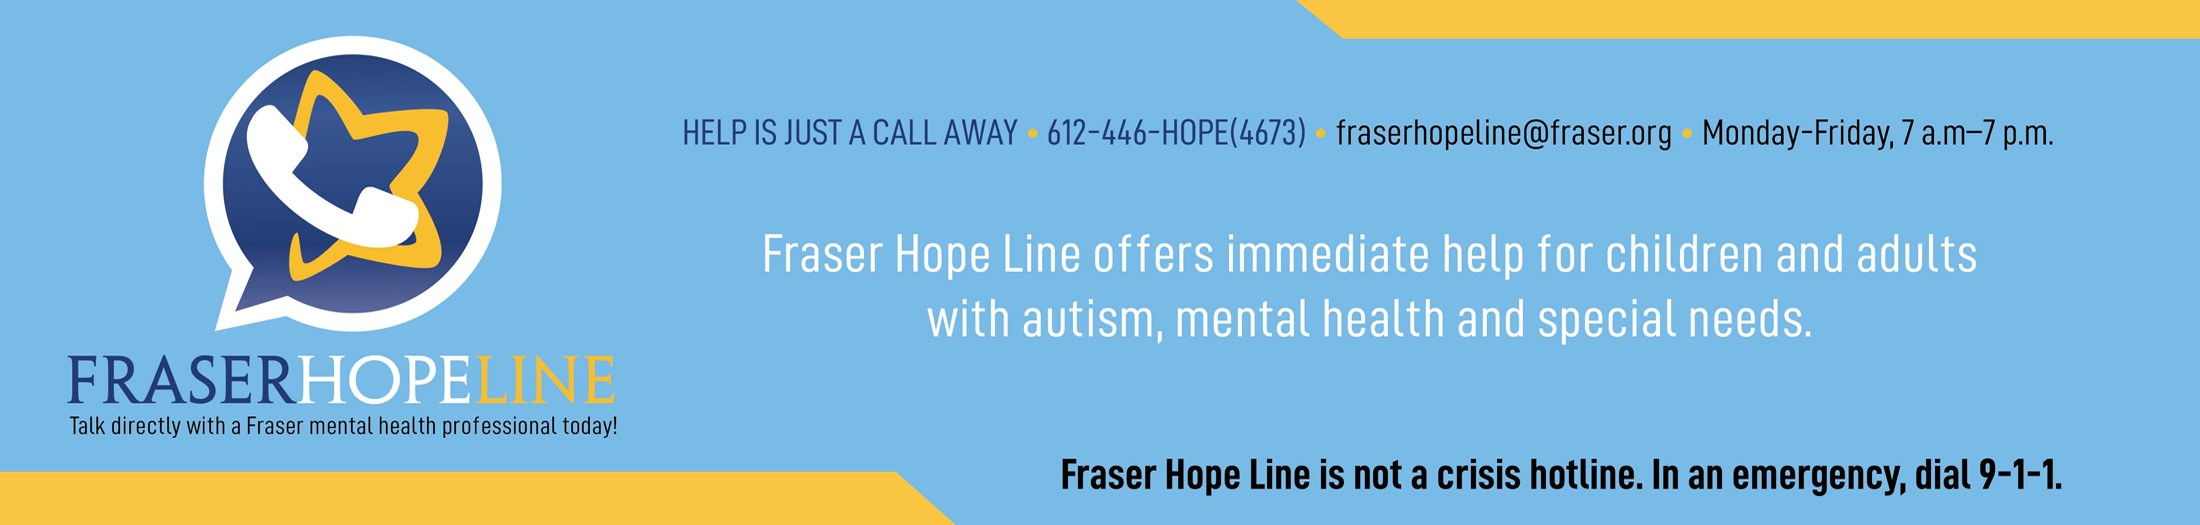 Fraser Hope Line Connects Individuals to a Mental Health Professional Immediately